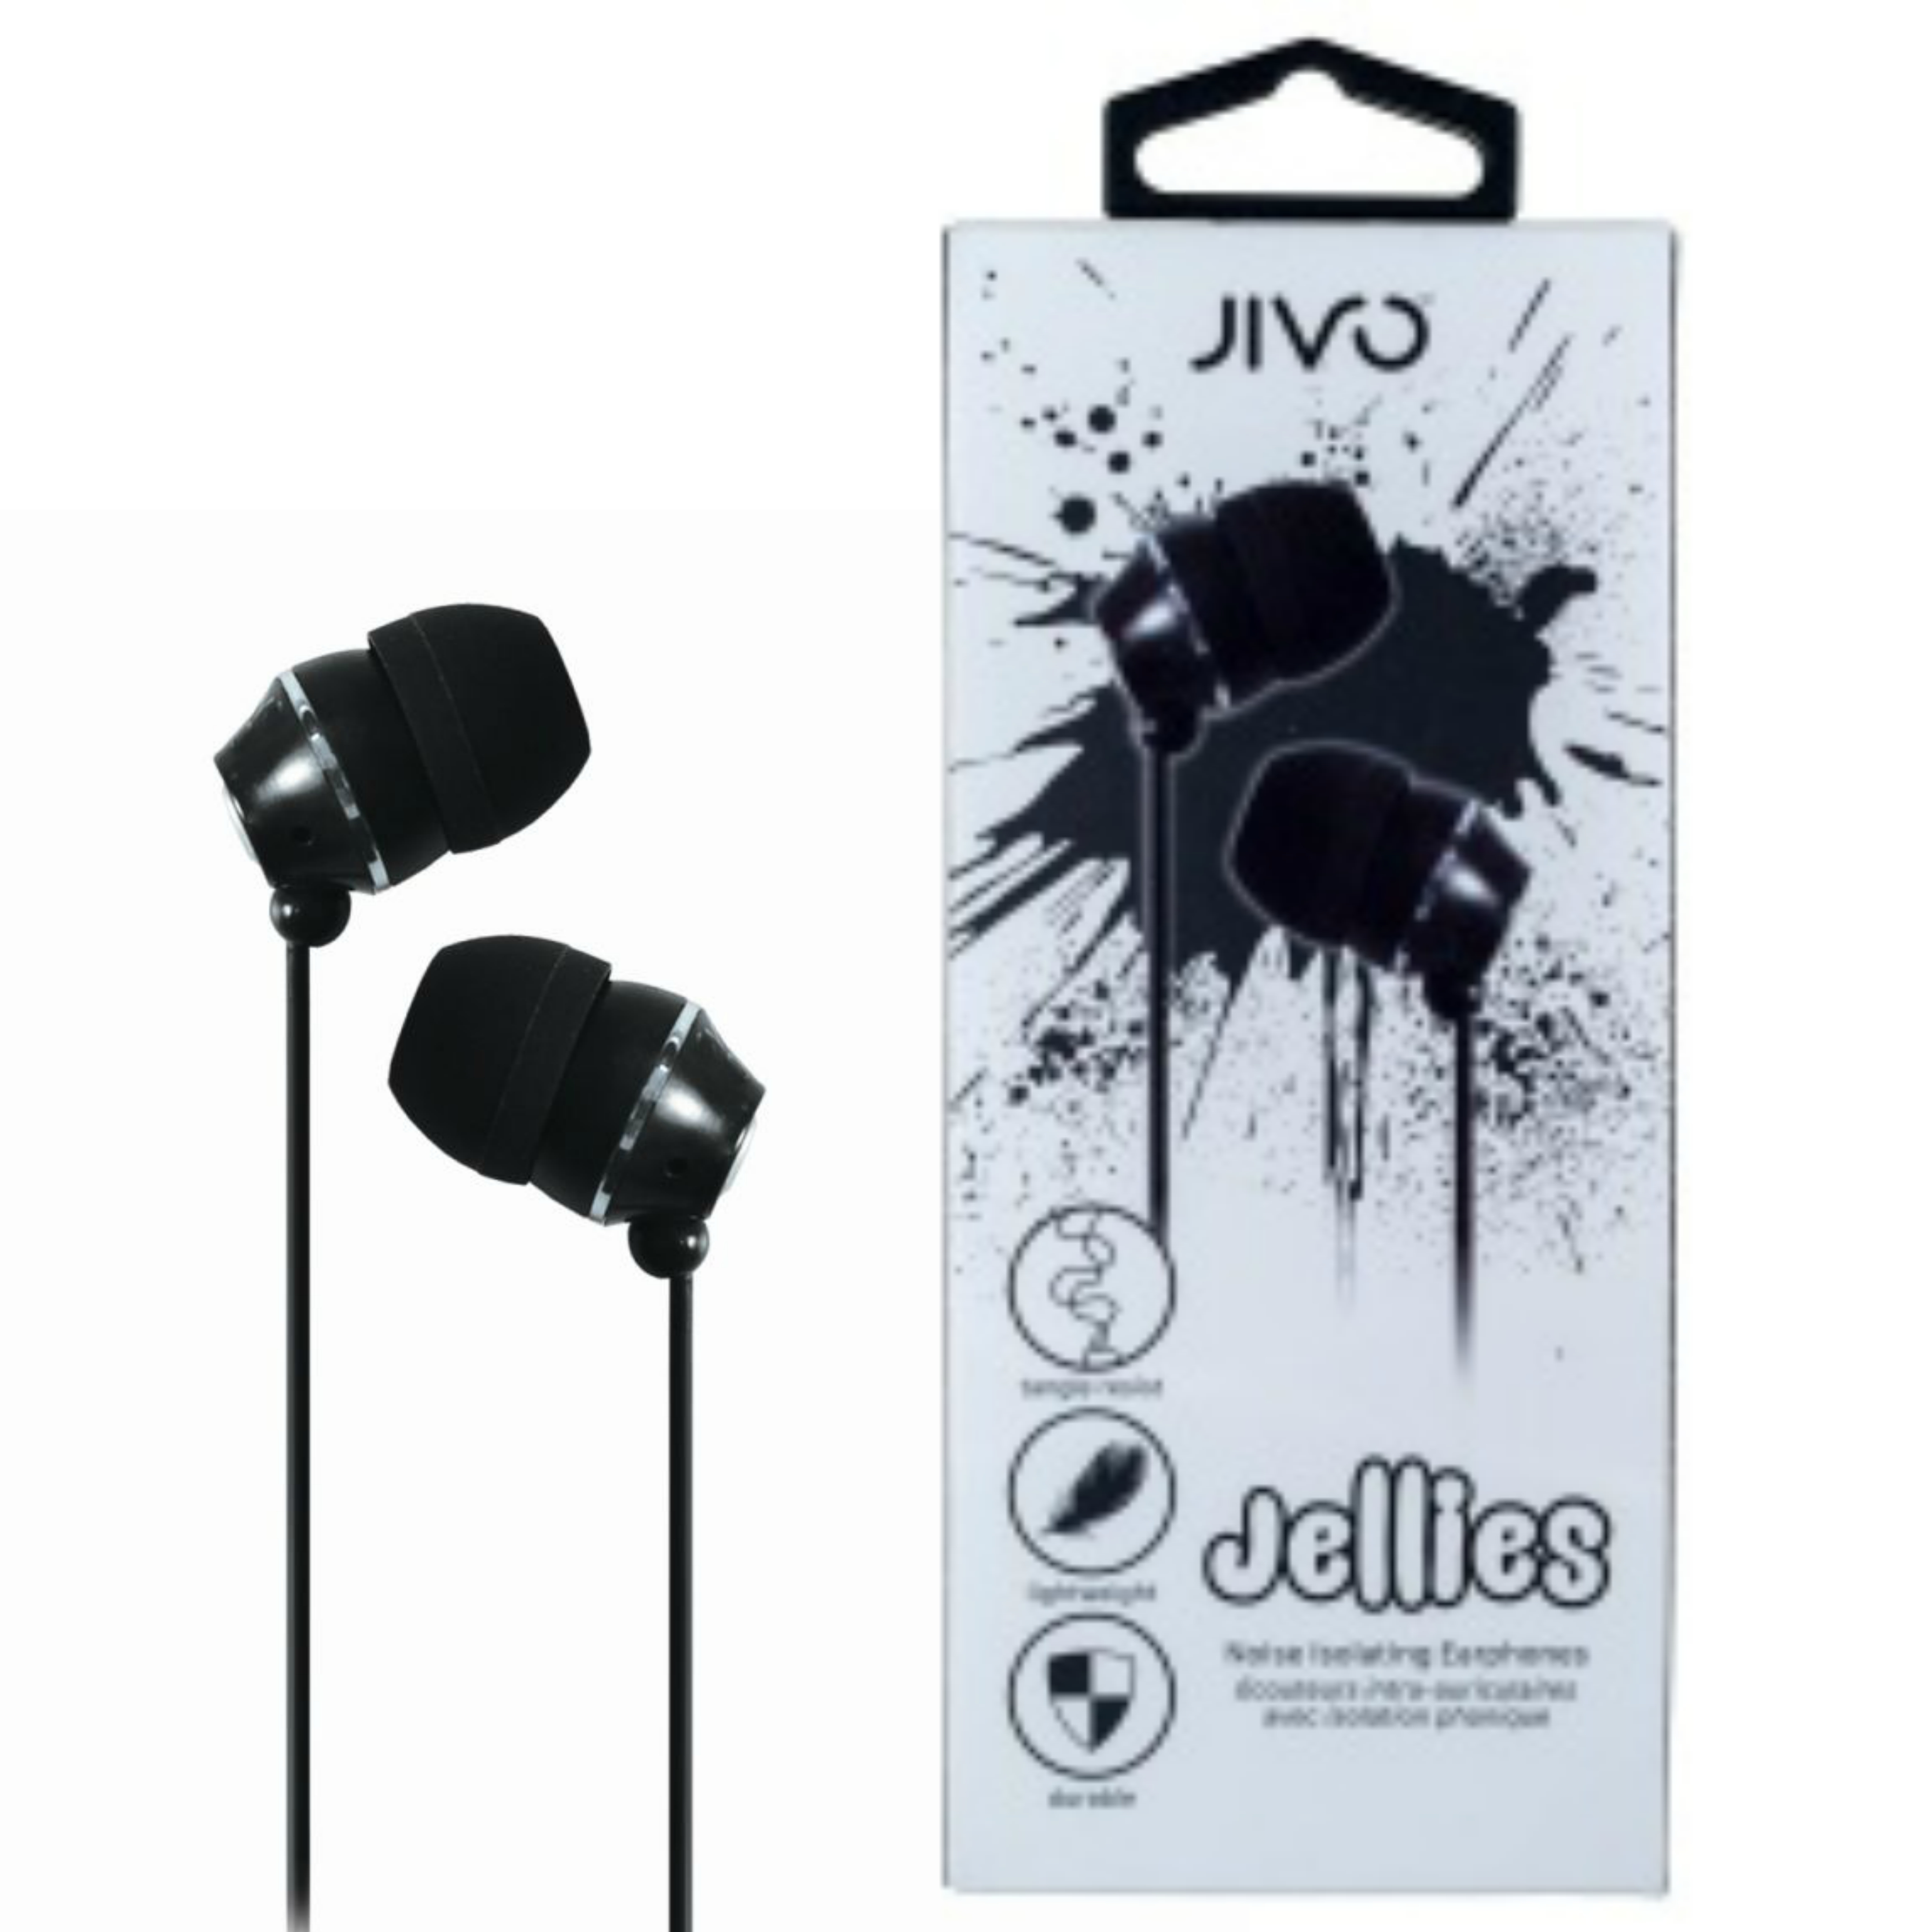 Jivo JI-1060B Jellies In-Ear Noise Isolating Earphone|Soft & Comfy|Liquorice|New